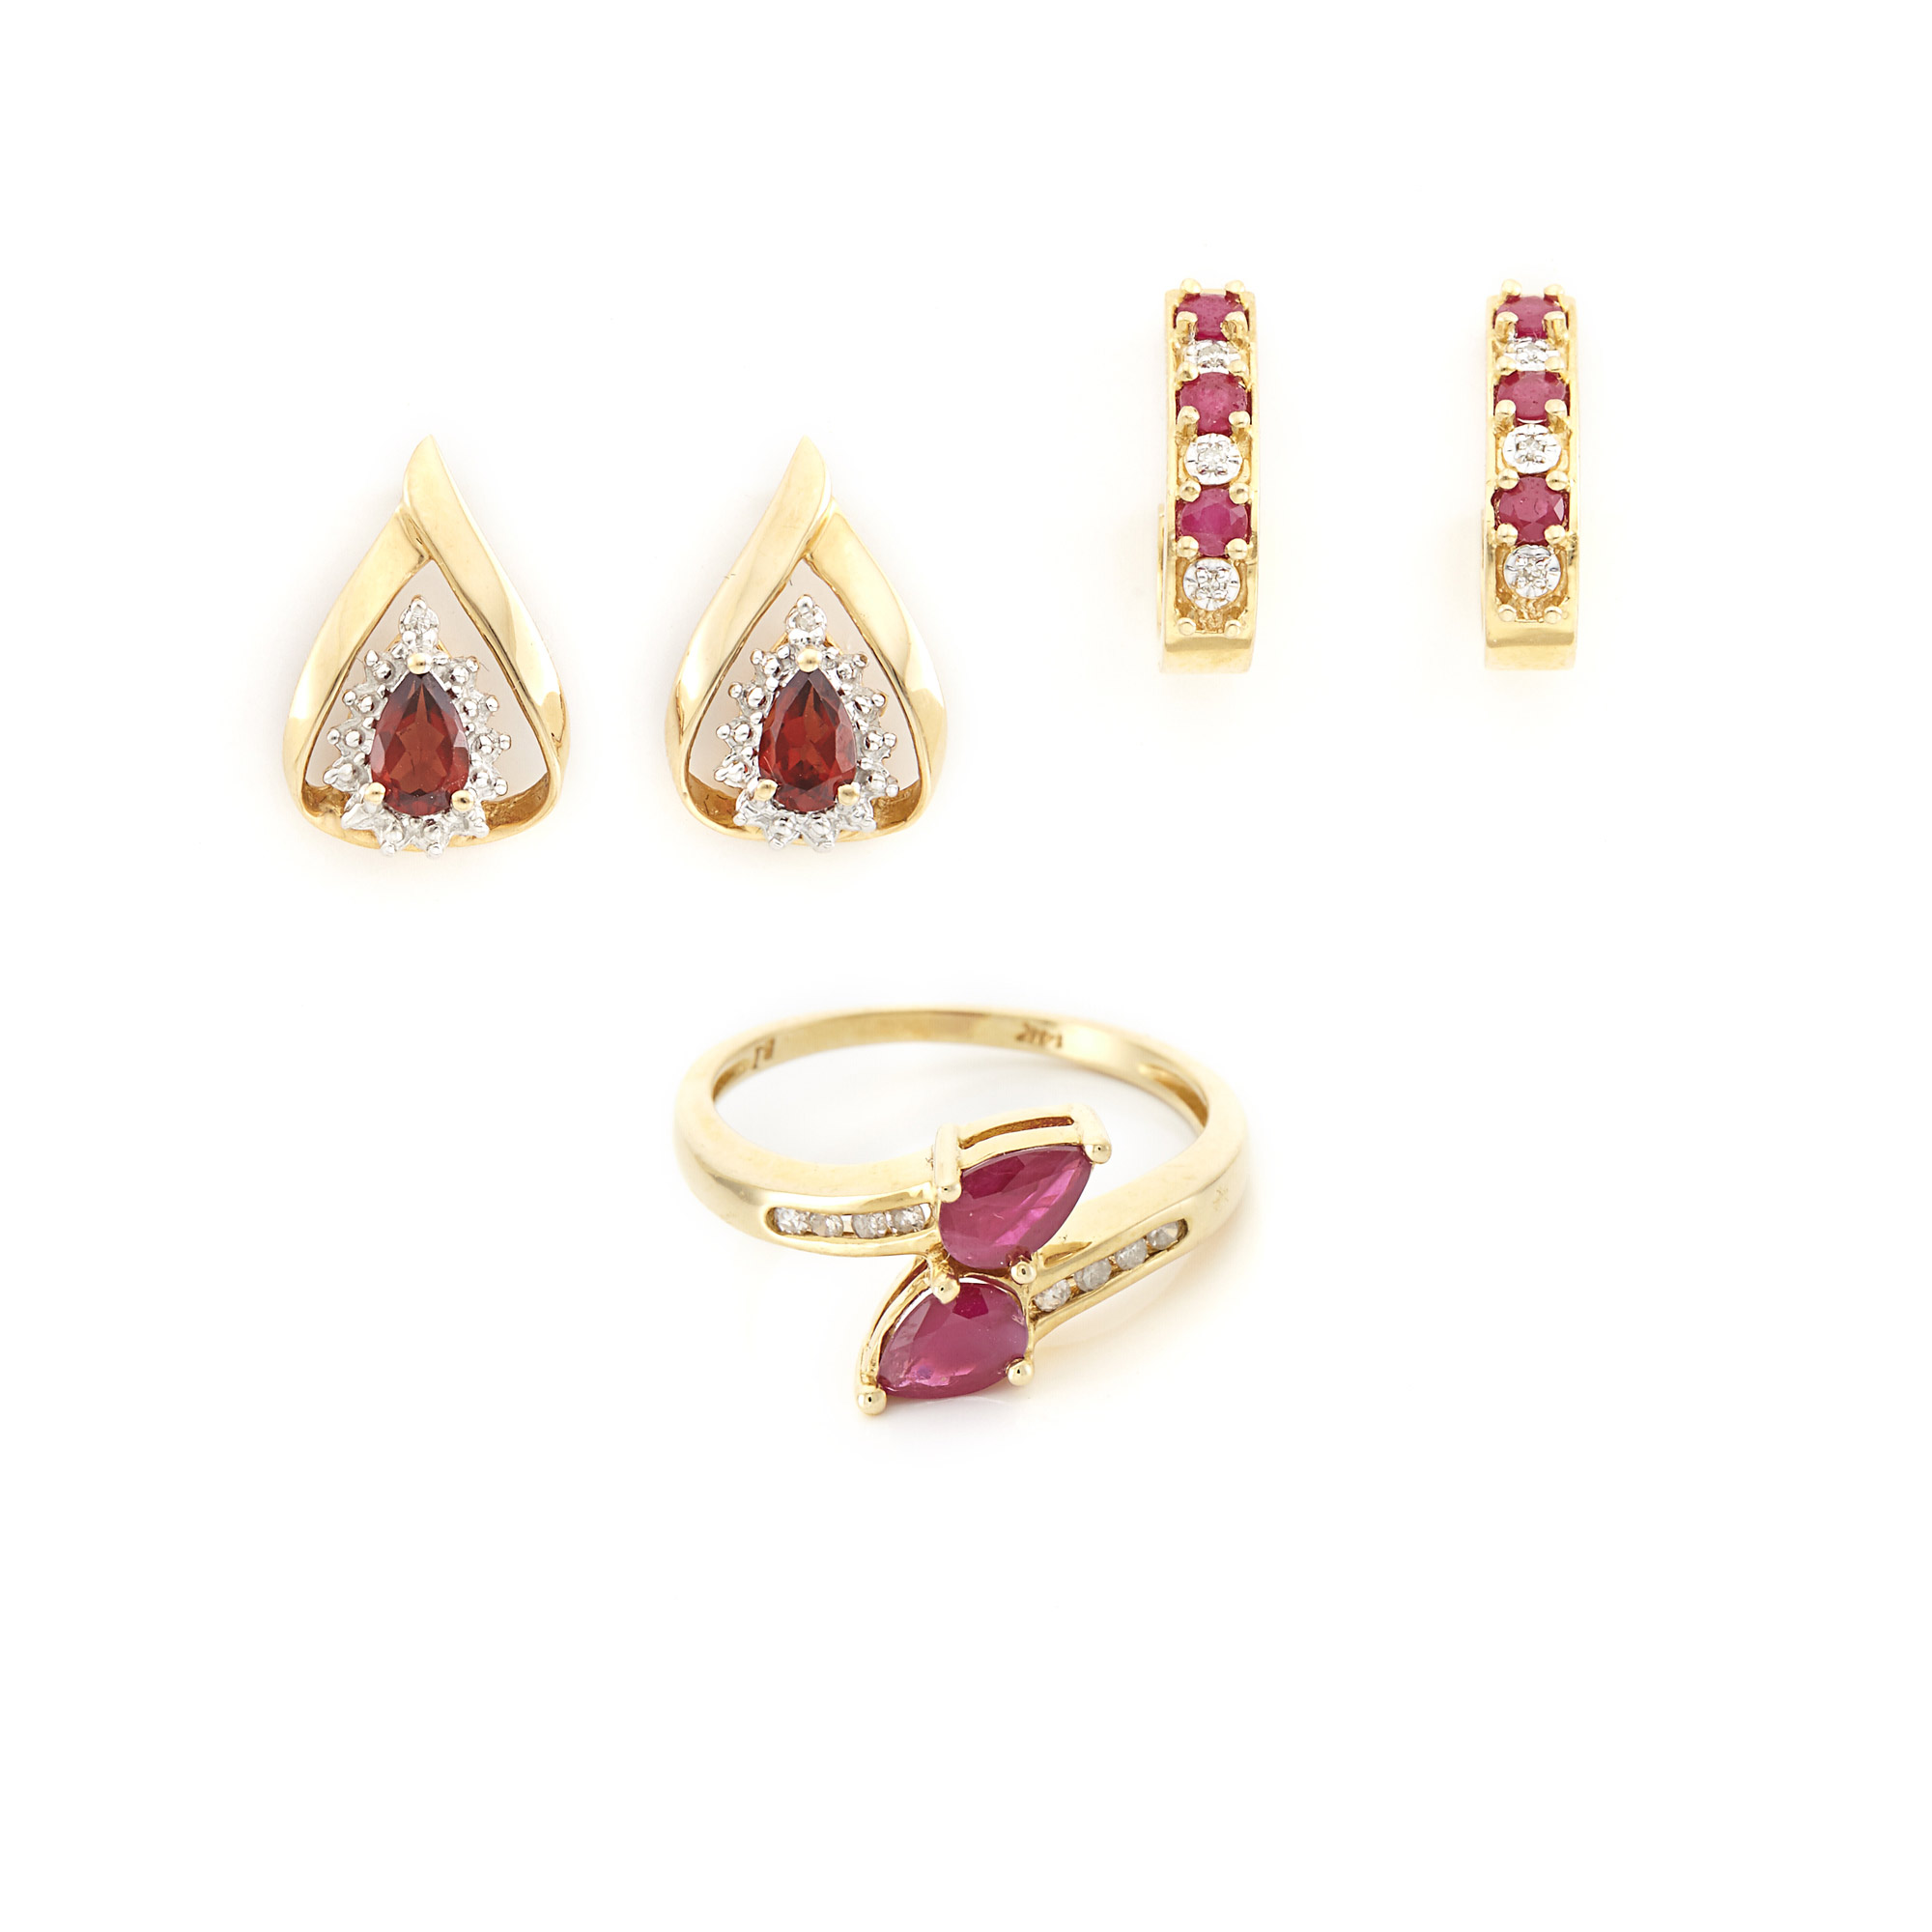 Lot image - Gold, Ruby and Diamond Ring and Pair of Earrings and Pair of Gold, Garnet and Diamond Earrings